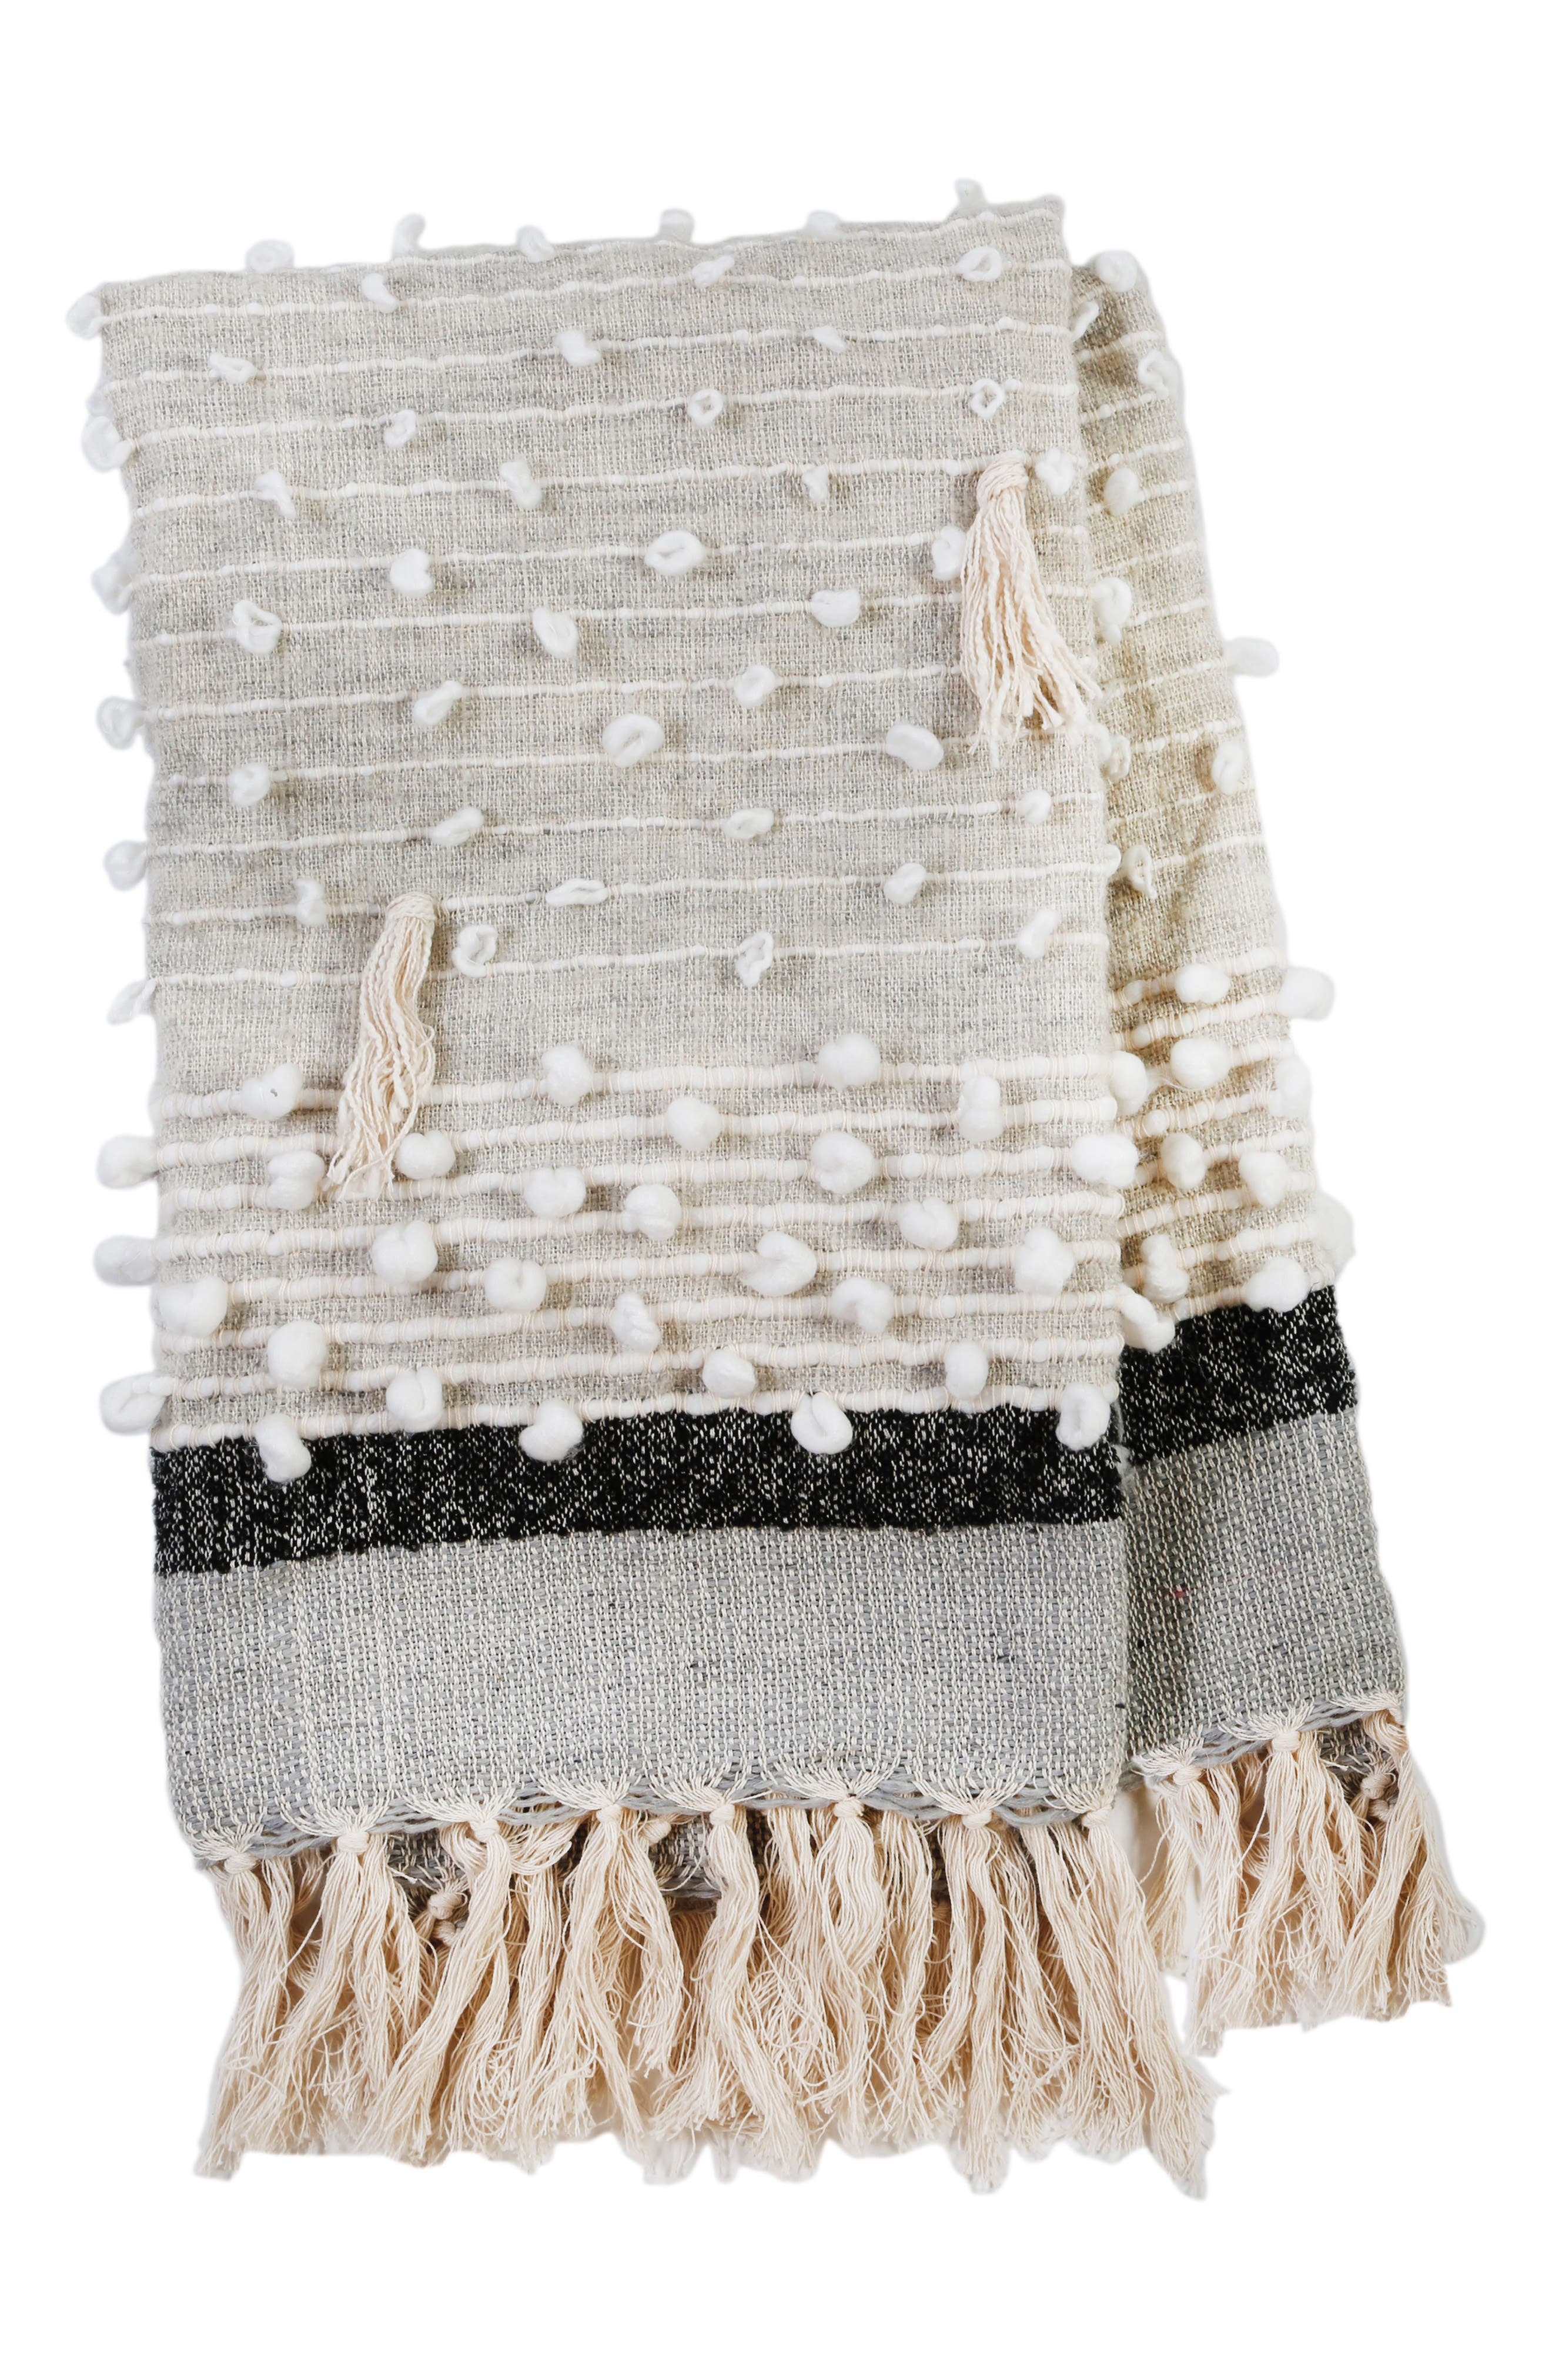 POM POM AT HOME, Ziggy Woven Throw Blanket, Main thumbnail 1, color, GREY/ CHARCOAL